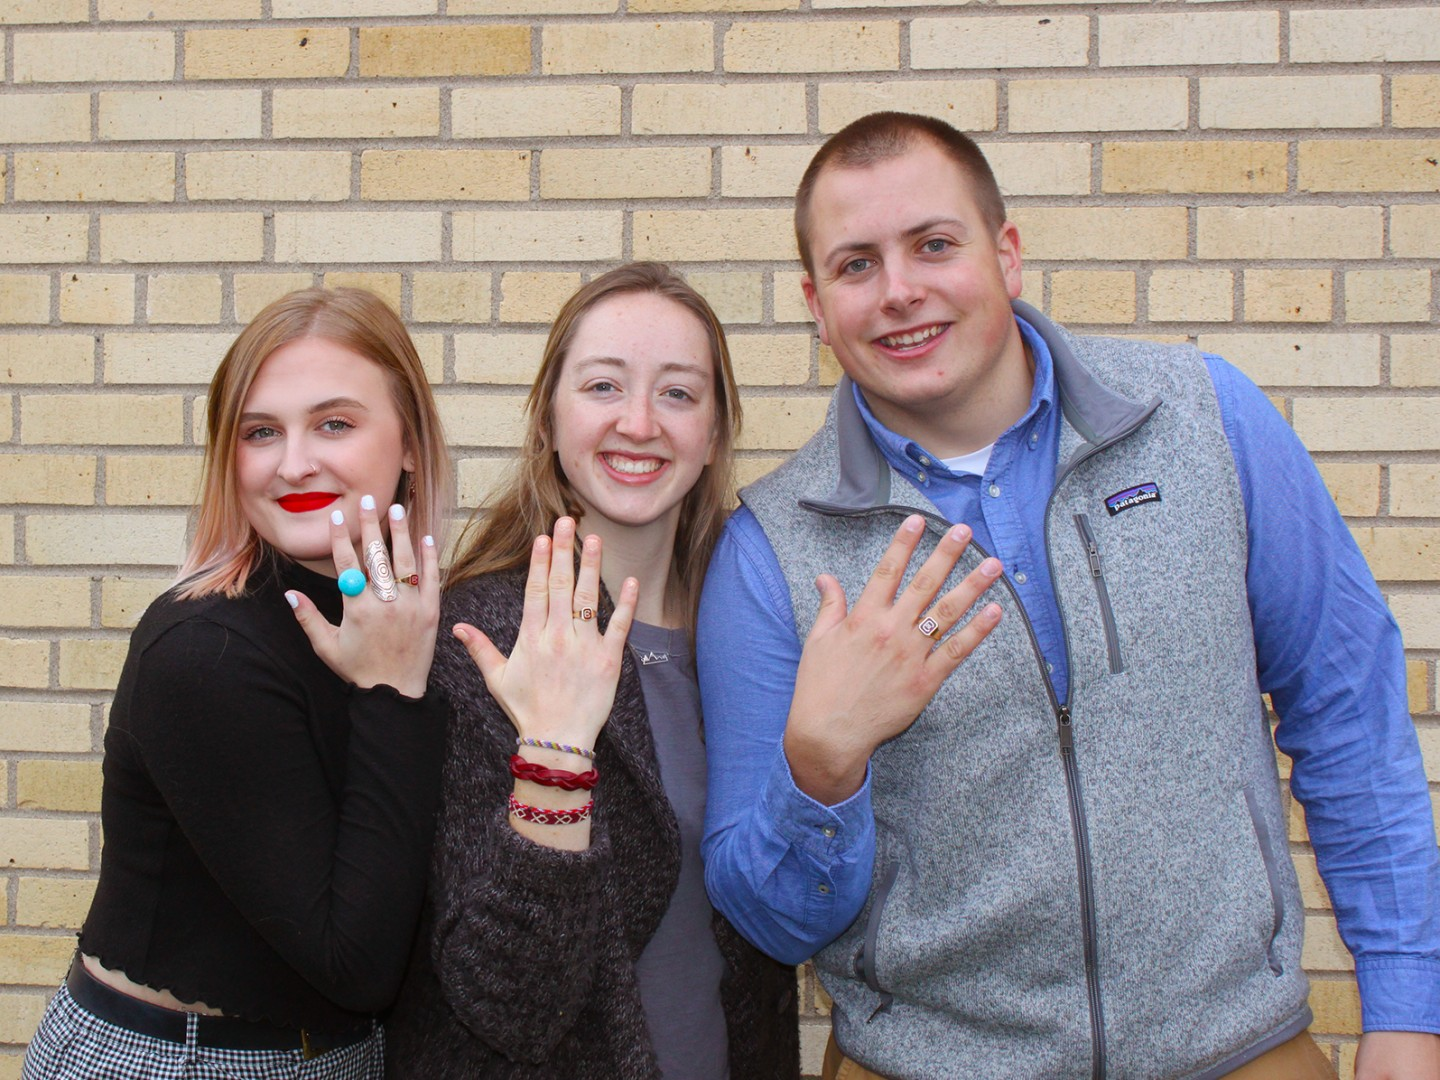 3 Concordia students showing Cobber rings